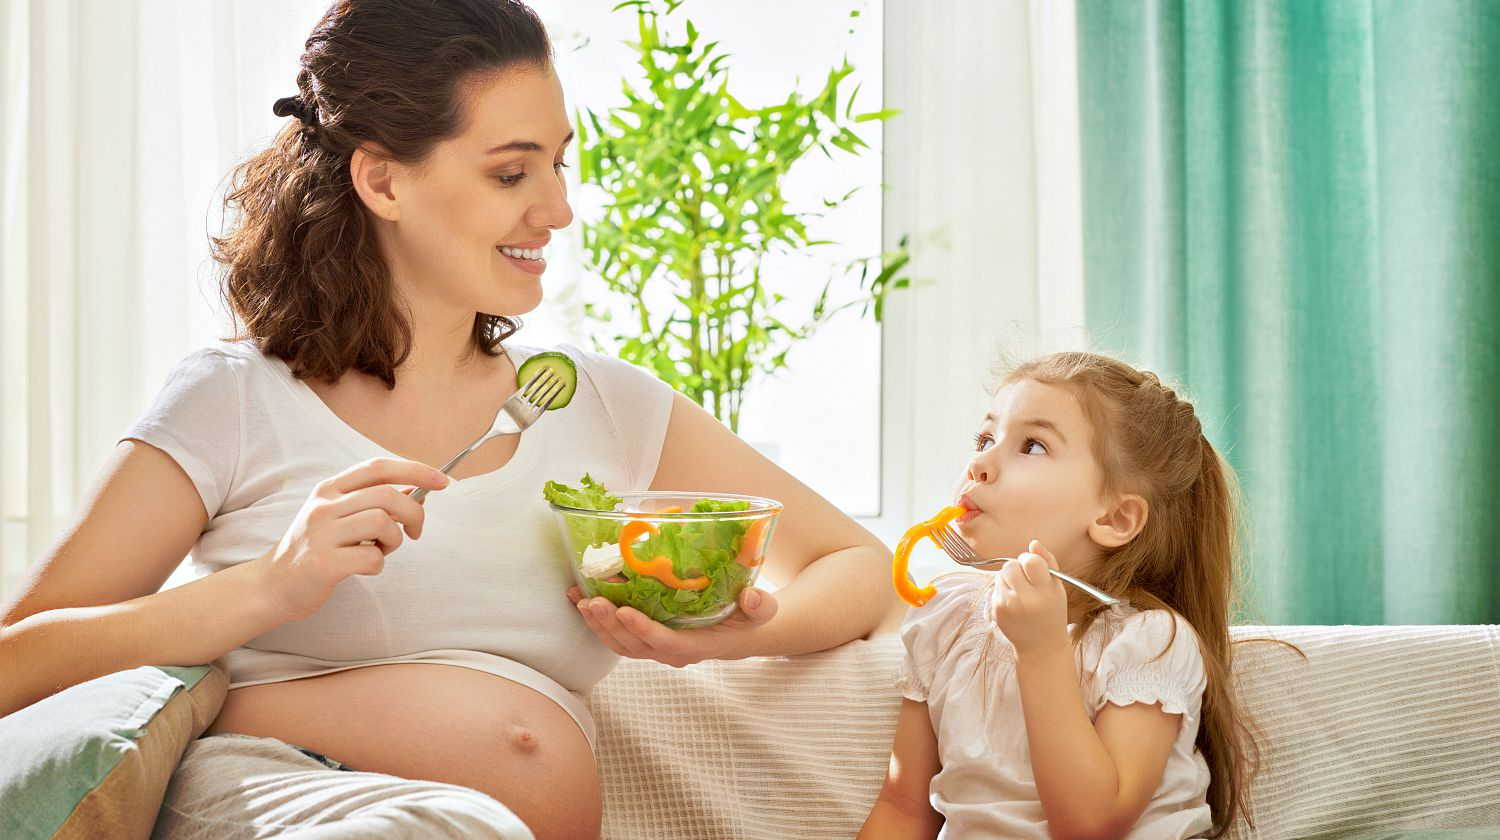 Feature | Pregnant mom holding a bowl of vegetables with her daughter | A Healthy and Balanced Diet For You and Your Baby During Pregnancy